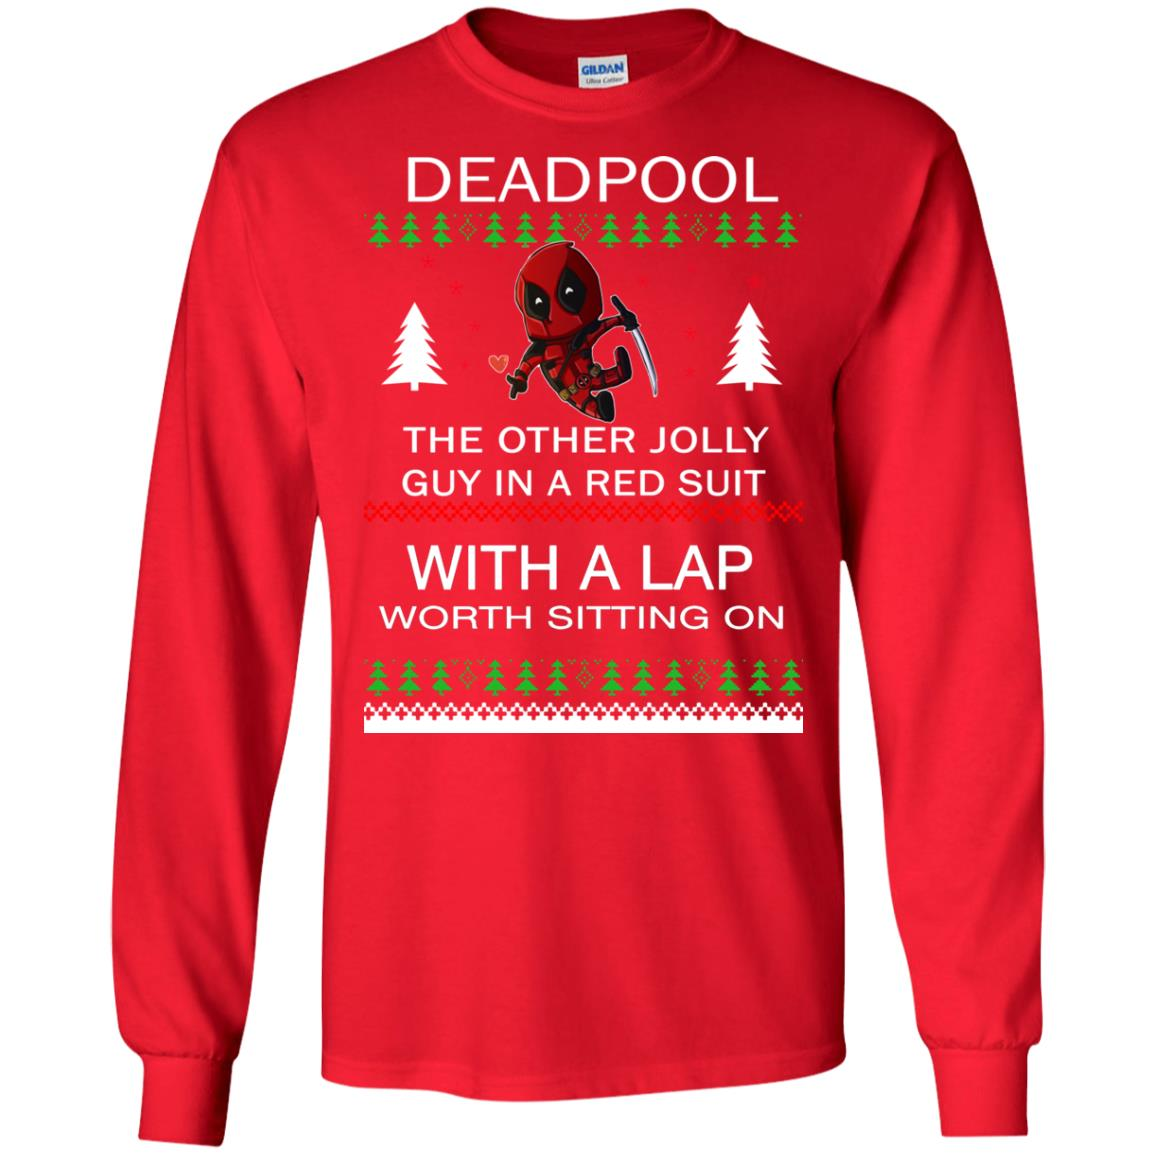 image 2831 - Deadpool The only jolly guy in a red suit with a Lap Christmas Sweater, Ugly Sweatshirts